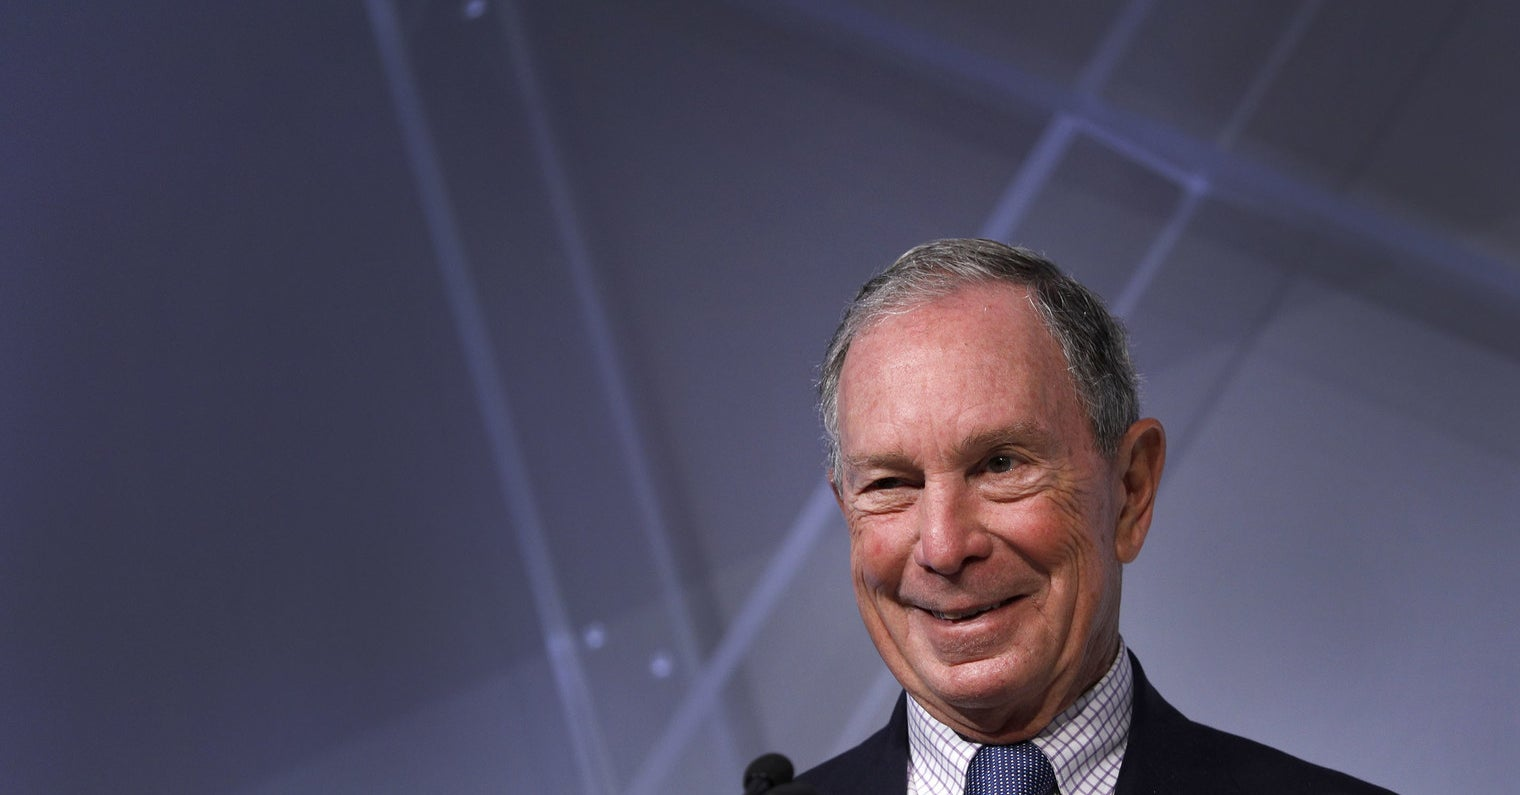 Sources: Bloomberg reporters express concern after Michael Bloomberg said his company might not cover politics if he ran for president